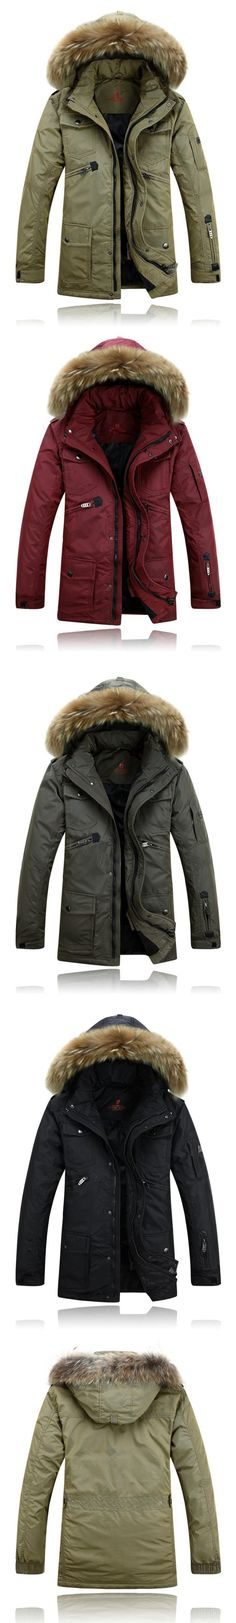 Canada Goose chilliwack parka sale price - 1000+ ideas about Mens Winter Jackets on Pinterest | Mens Winter ...